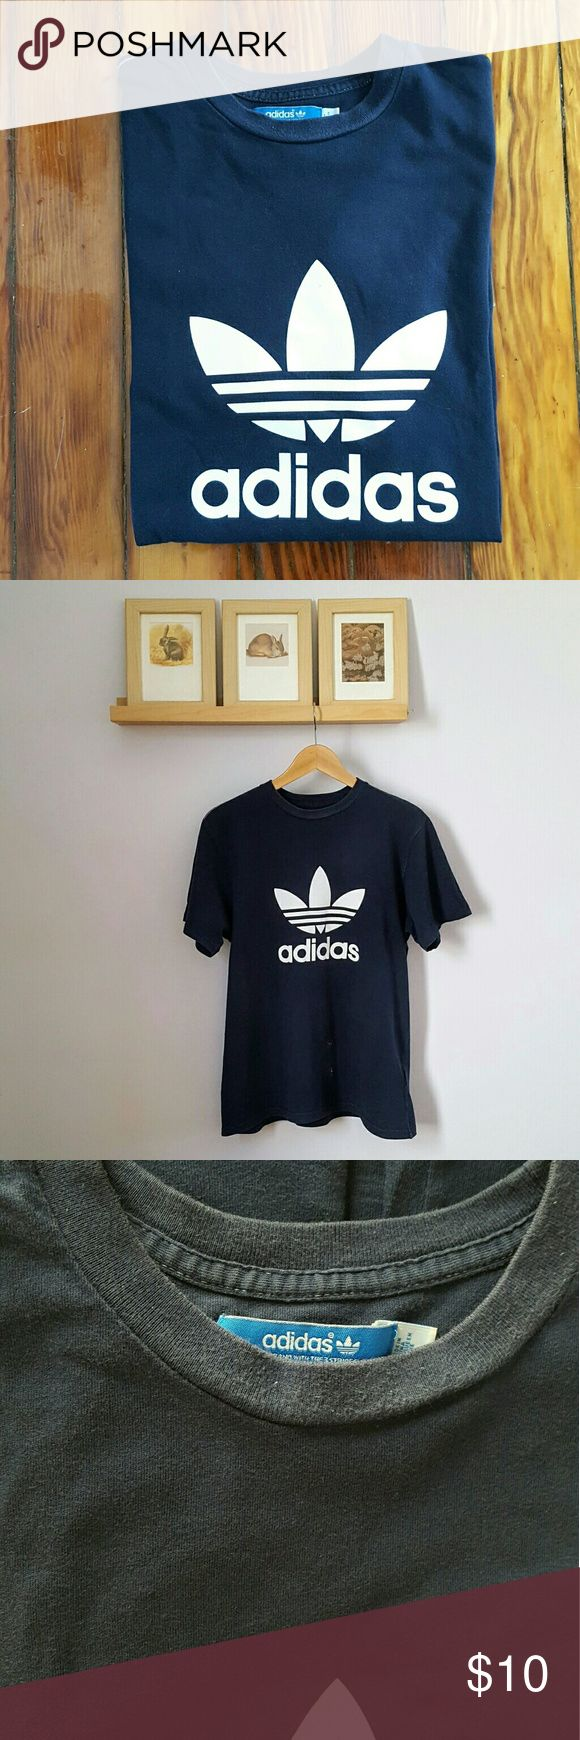 """Navy Blue Adidas T-Shirt Navy Blue Adidas T-Shirt. By Adidas, made in China. 100% cotton. Marked a size M- 20.5"""" armpit to armpit, 27"""" long. Please note that this is in somewhat distressed condition with fading, some very light pilling and a couple paint stains on the front (last three pictures). This would be a great shirt to crop, distress more or wear as is! #adidas #unisex adidas Shirts Tees - Short Sleeve"""